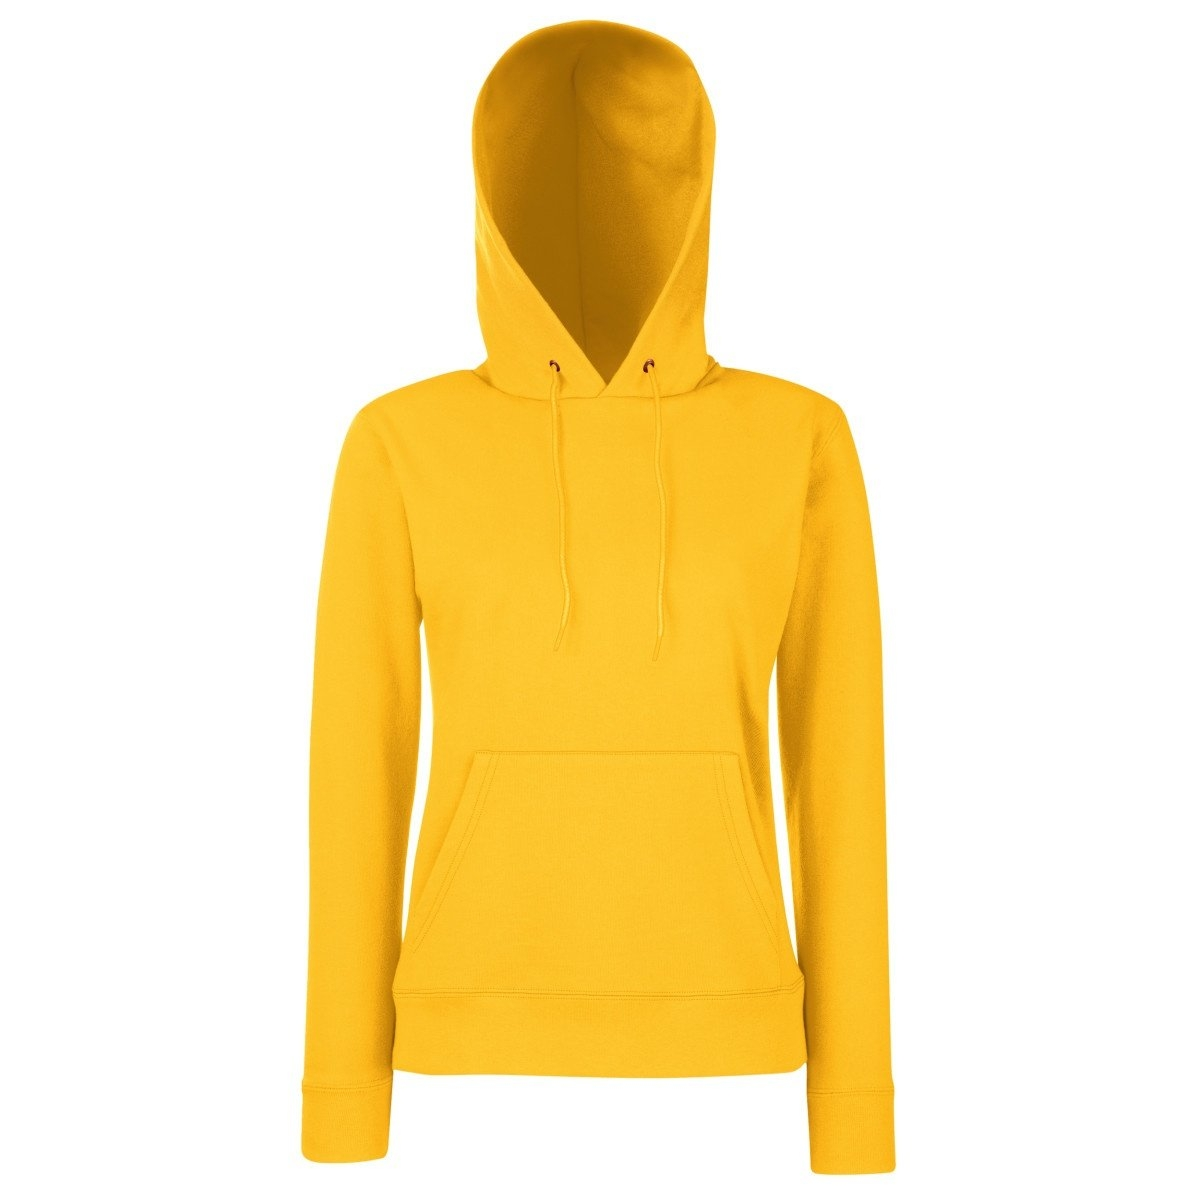 Fruit of the Loom capuchontrui »Lady Fit Pullover mit Kapuze« goedkoop op otto.nl kopen